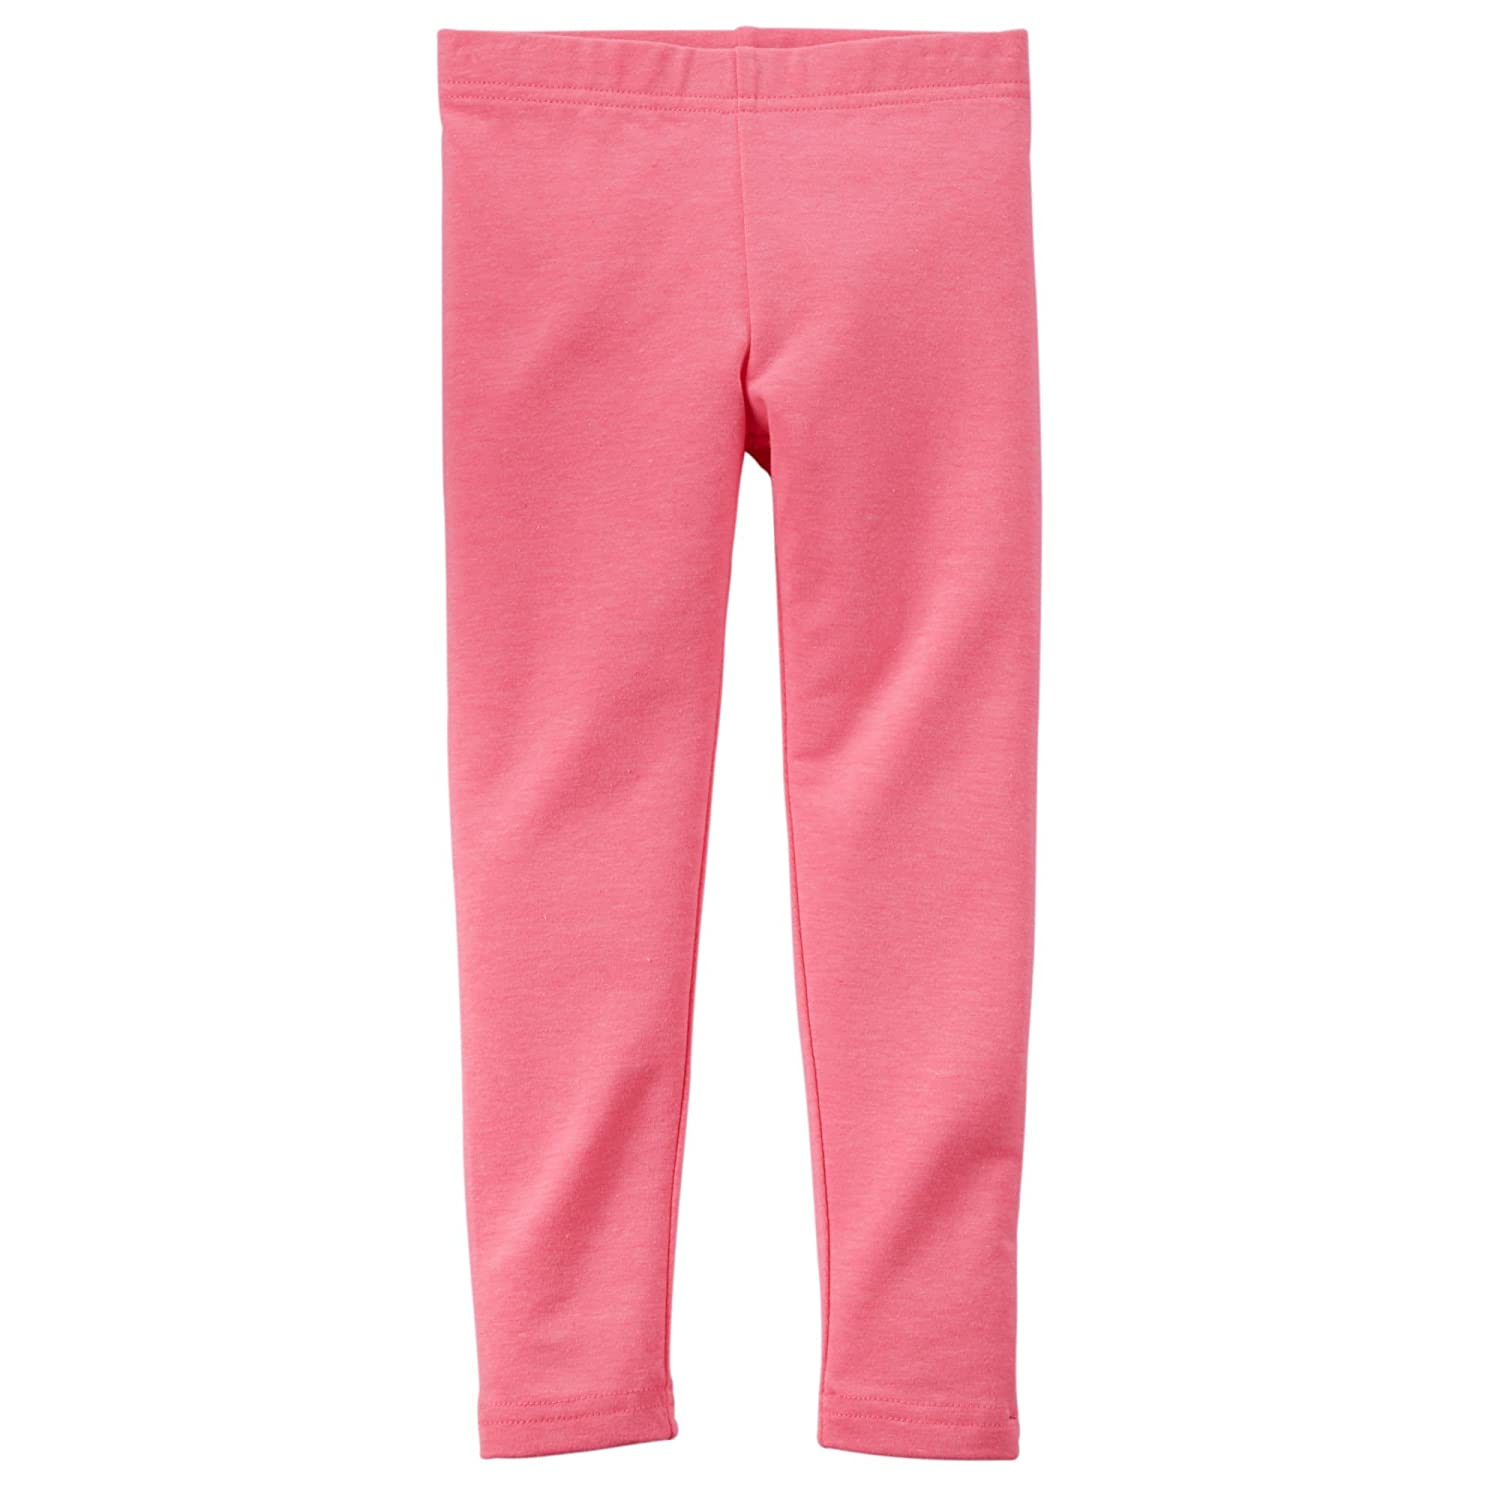 Carters Girls Neon Leggings Pink